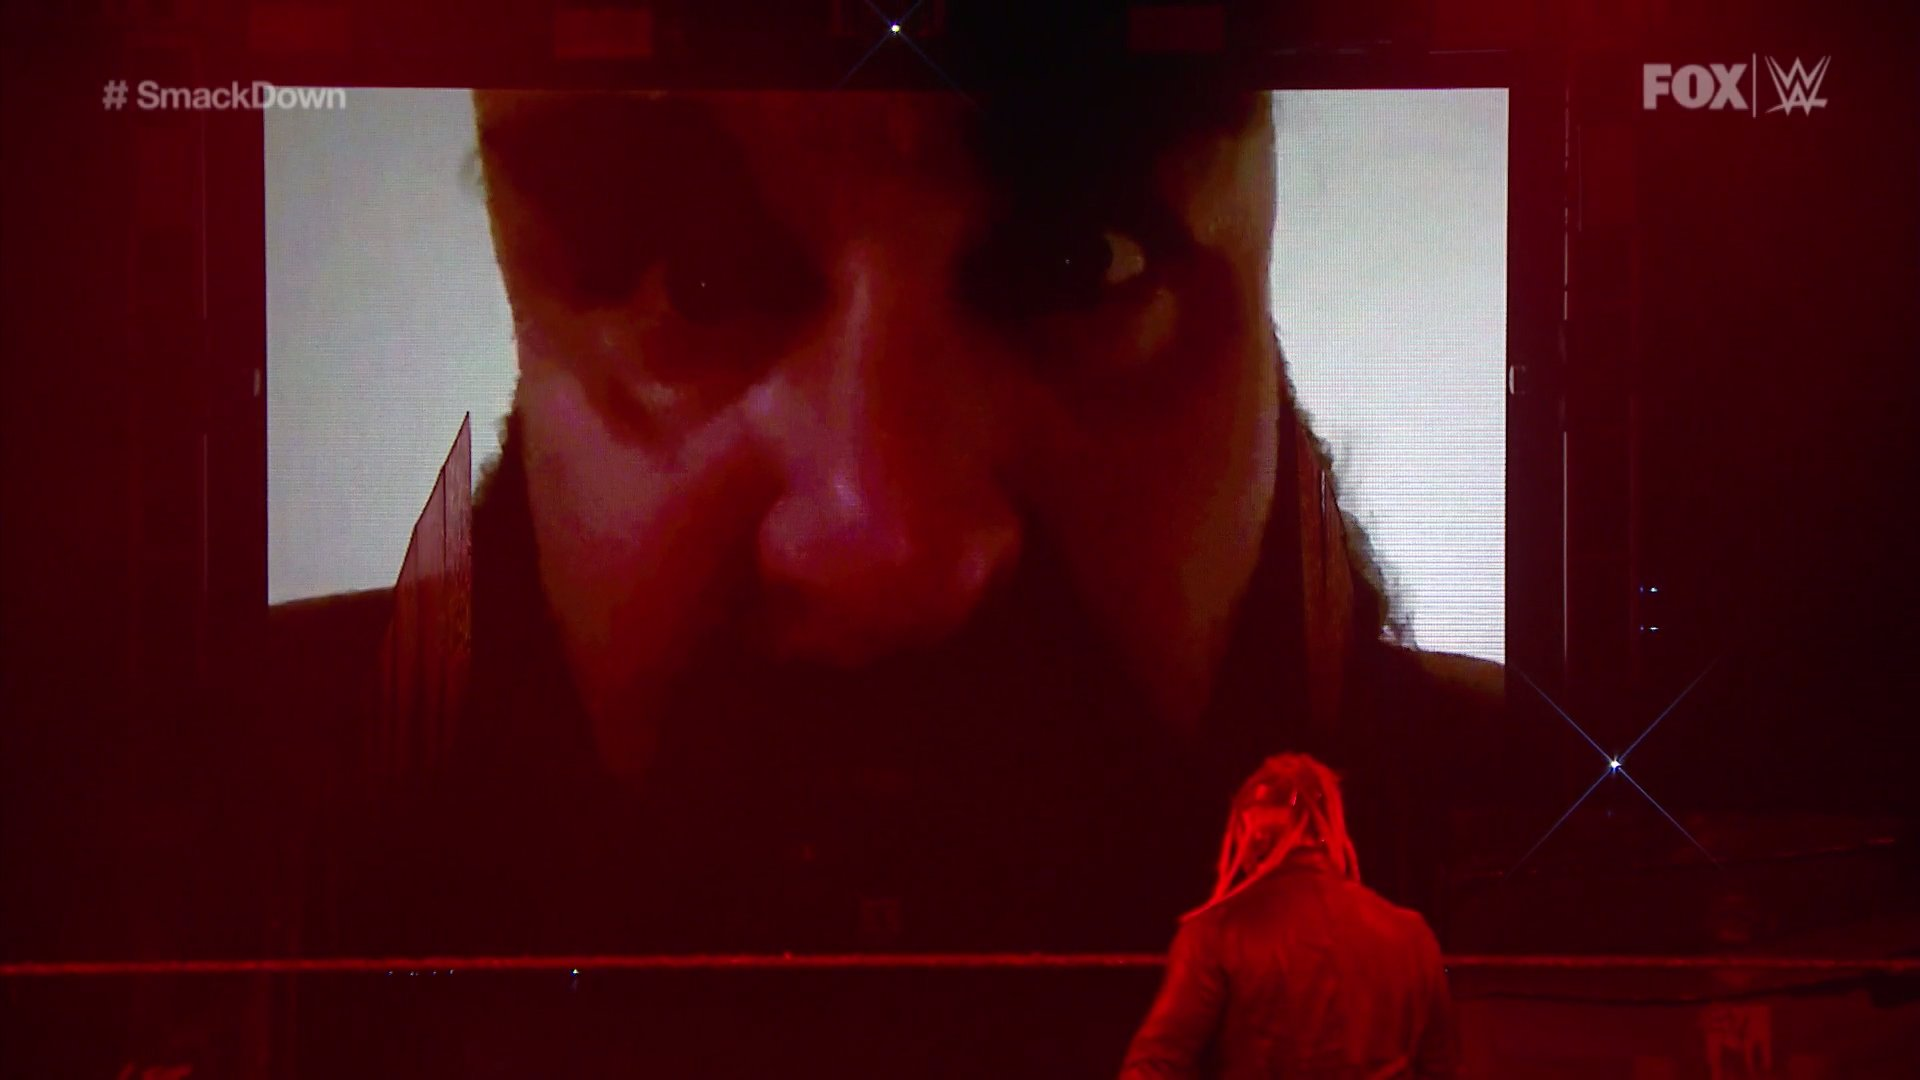 Smackdown: The Fiend vs Braun Strowman confirmed at WWE Summerslam 2